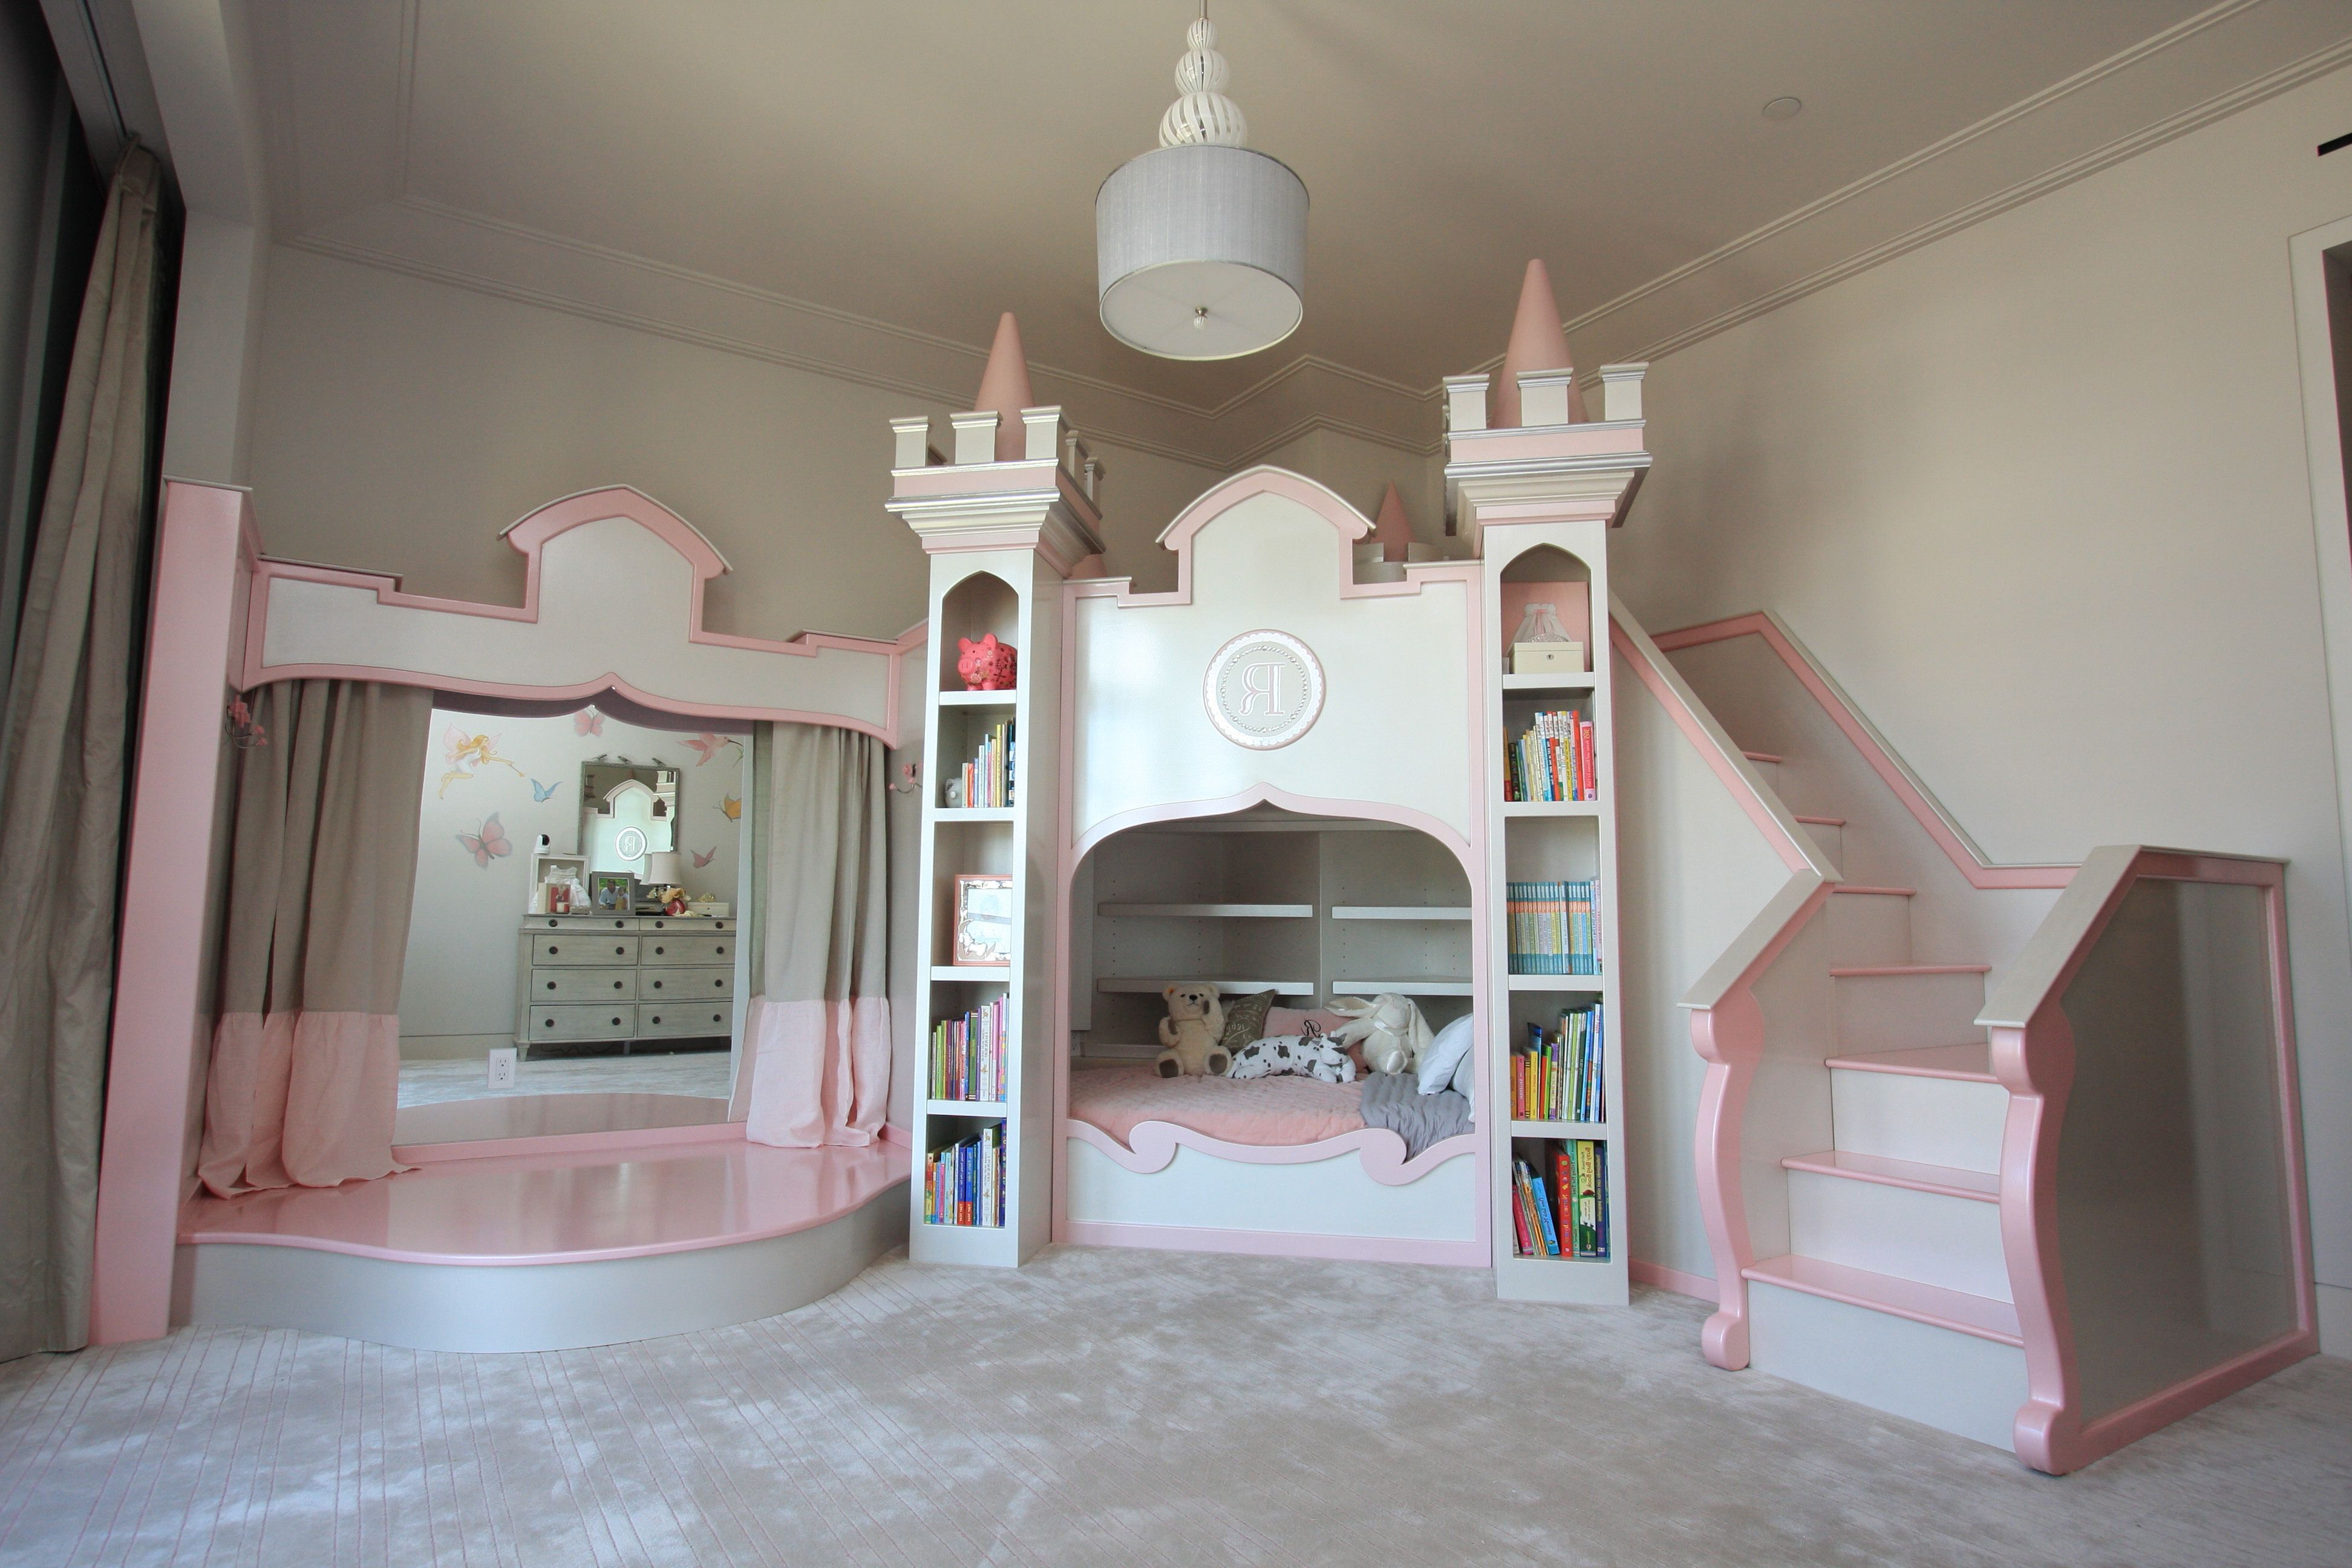 Bedroom Give Fabulous Place For Your Little Girl Awesome Looking Fairytale Themed Girls Bedroom Decor Be Princess Castle Bed Princess Bedrooms Castle Bed